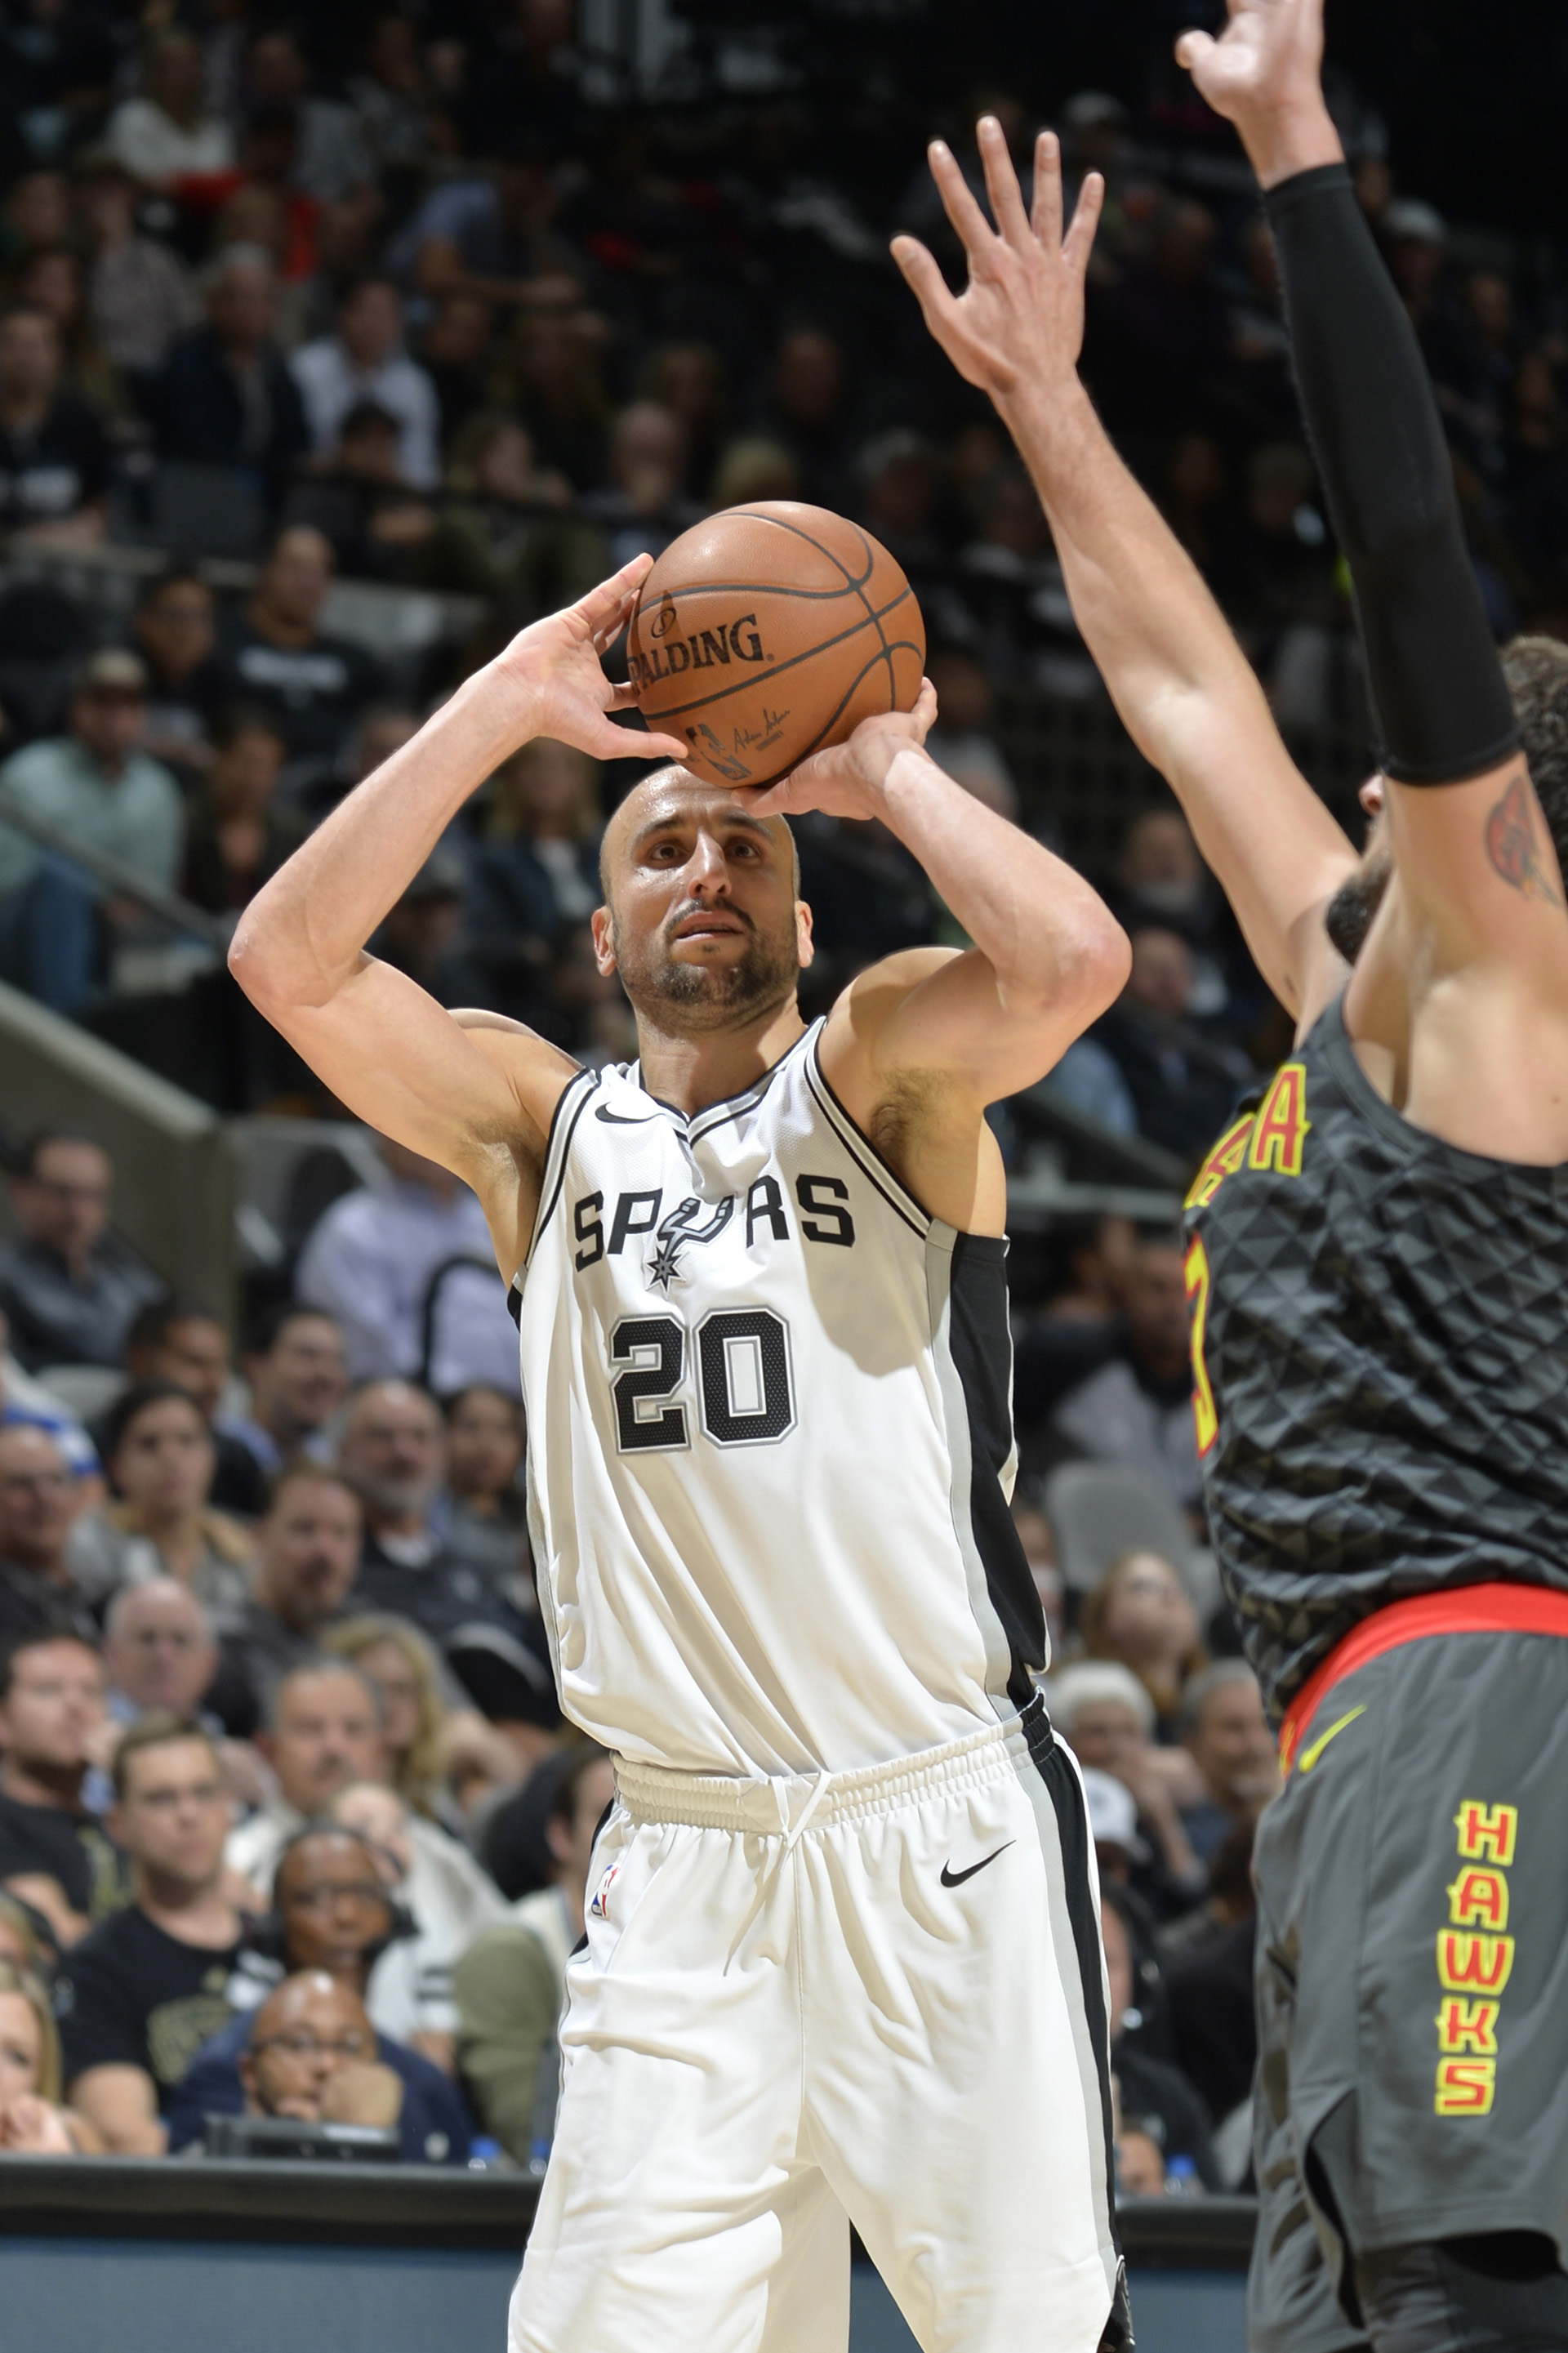 SAN ANTONIO, TX - NOVEMBER 20: Manu Ginobili #20 of the San Antonio Spurs goes for a shot against the Atlanta Hawks on November 20, 2017 at the AT&T Center in San Antonio, Texas. NOTE TO USER: User expressly acknowledges and agrees that, by downloading and or using this photograph, user is consenting to the terms and conditions of the Getty Images License Agreement. Mandatory Copyright Notice: Copyright 2017 NBAE Mark Sobhani/NBAE via Getty Images/AFP